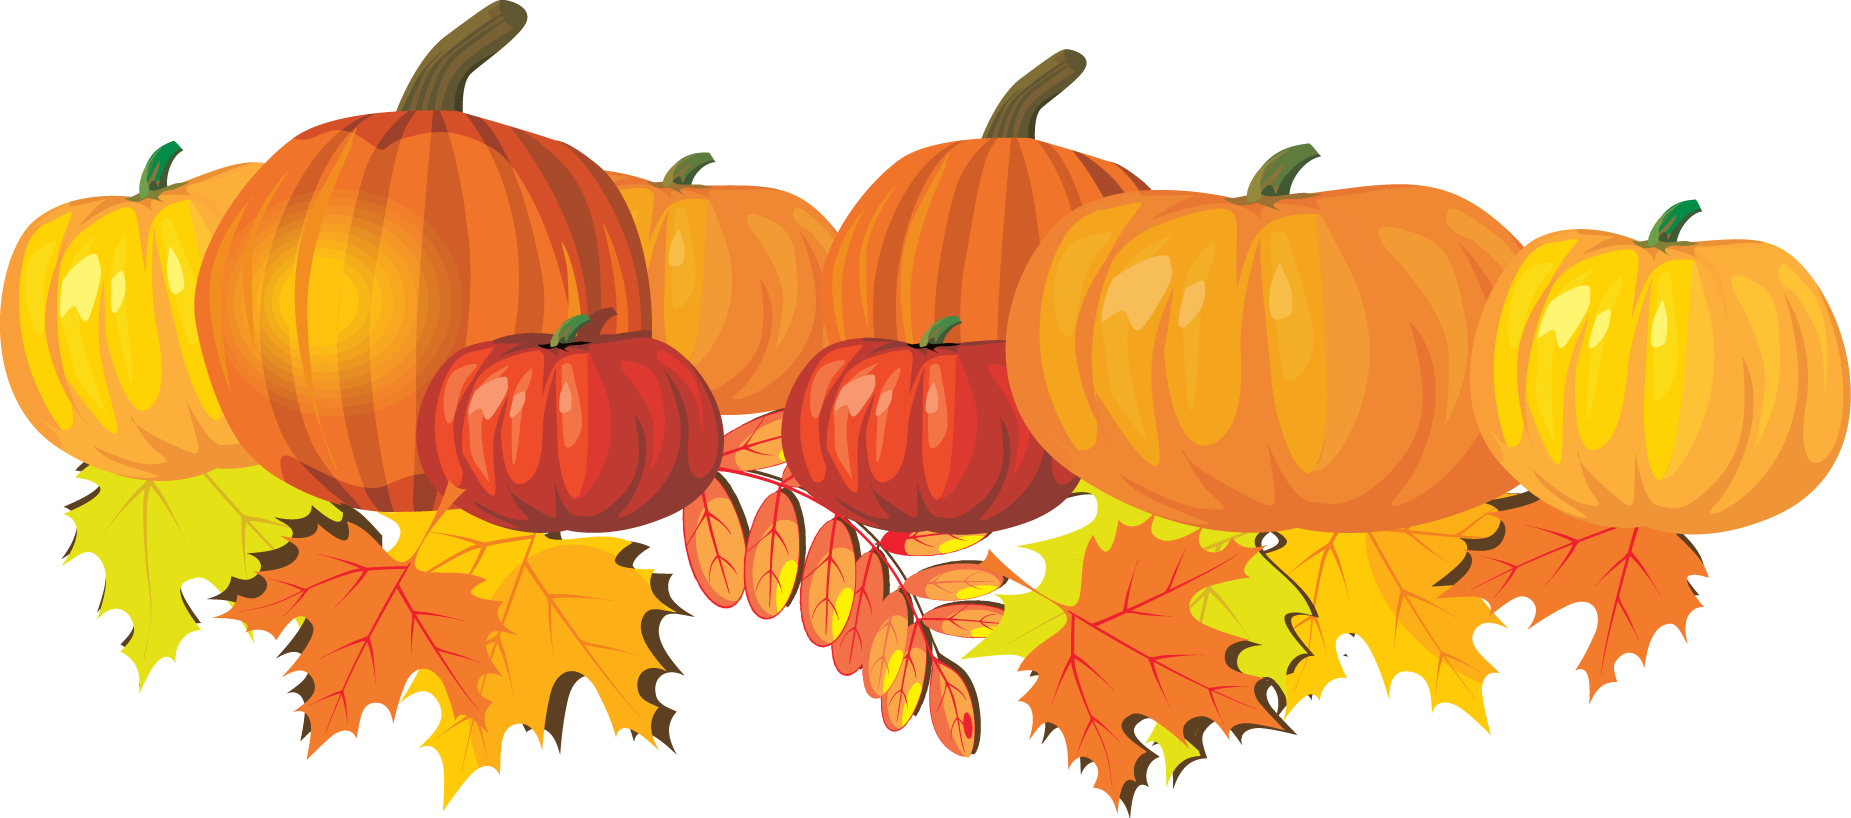 fall leaves and pumpkins border png